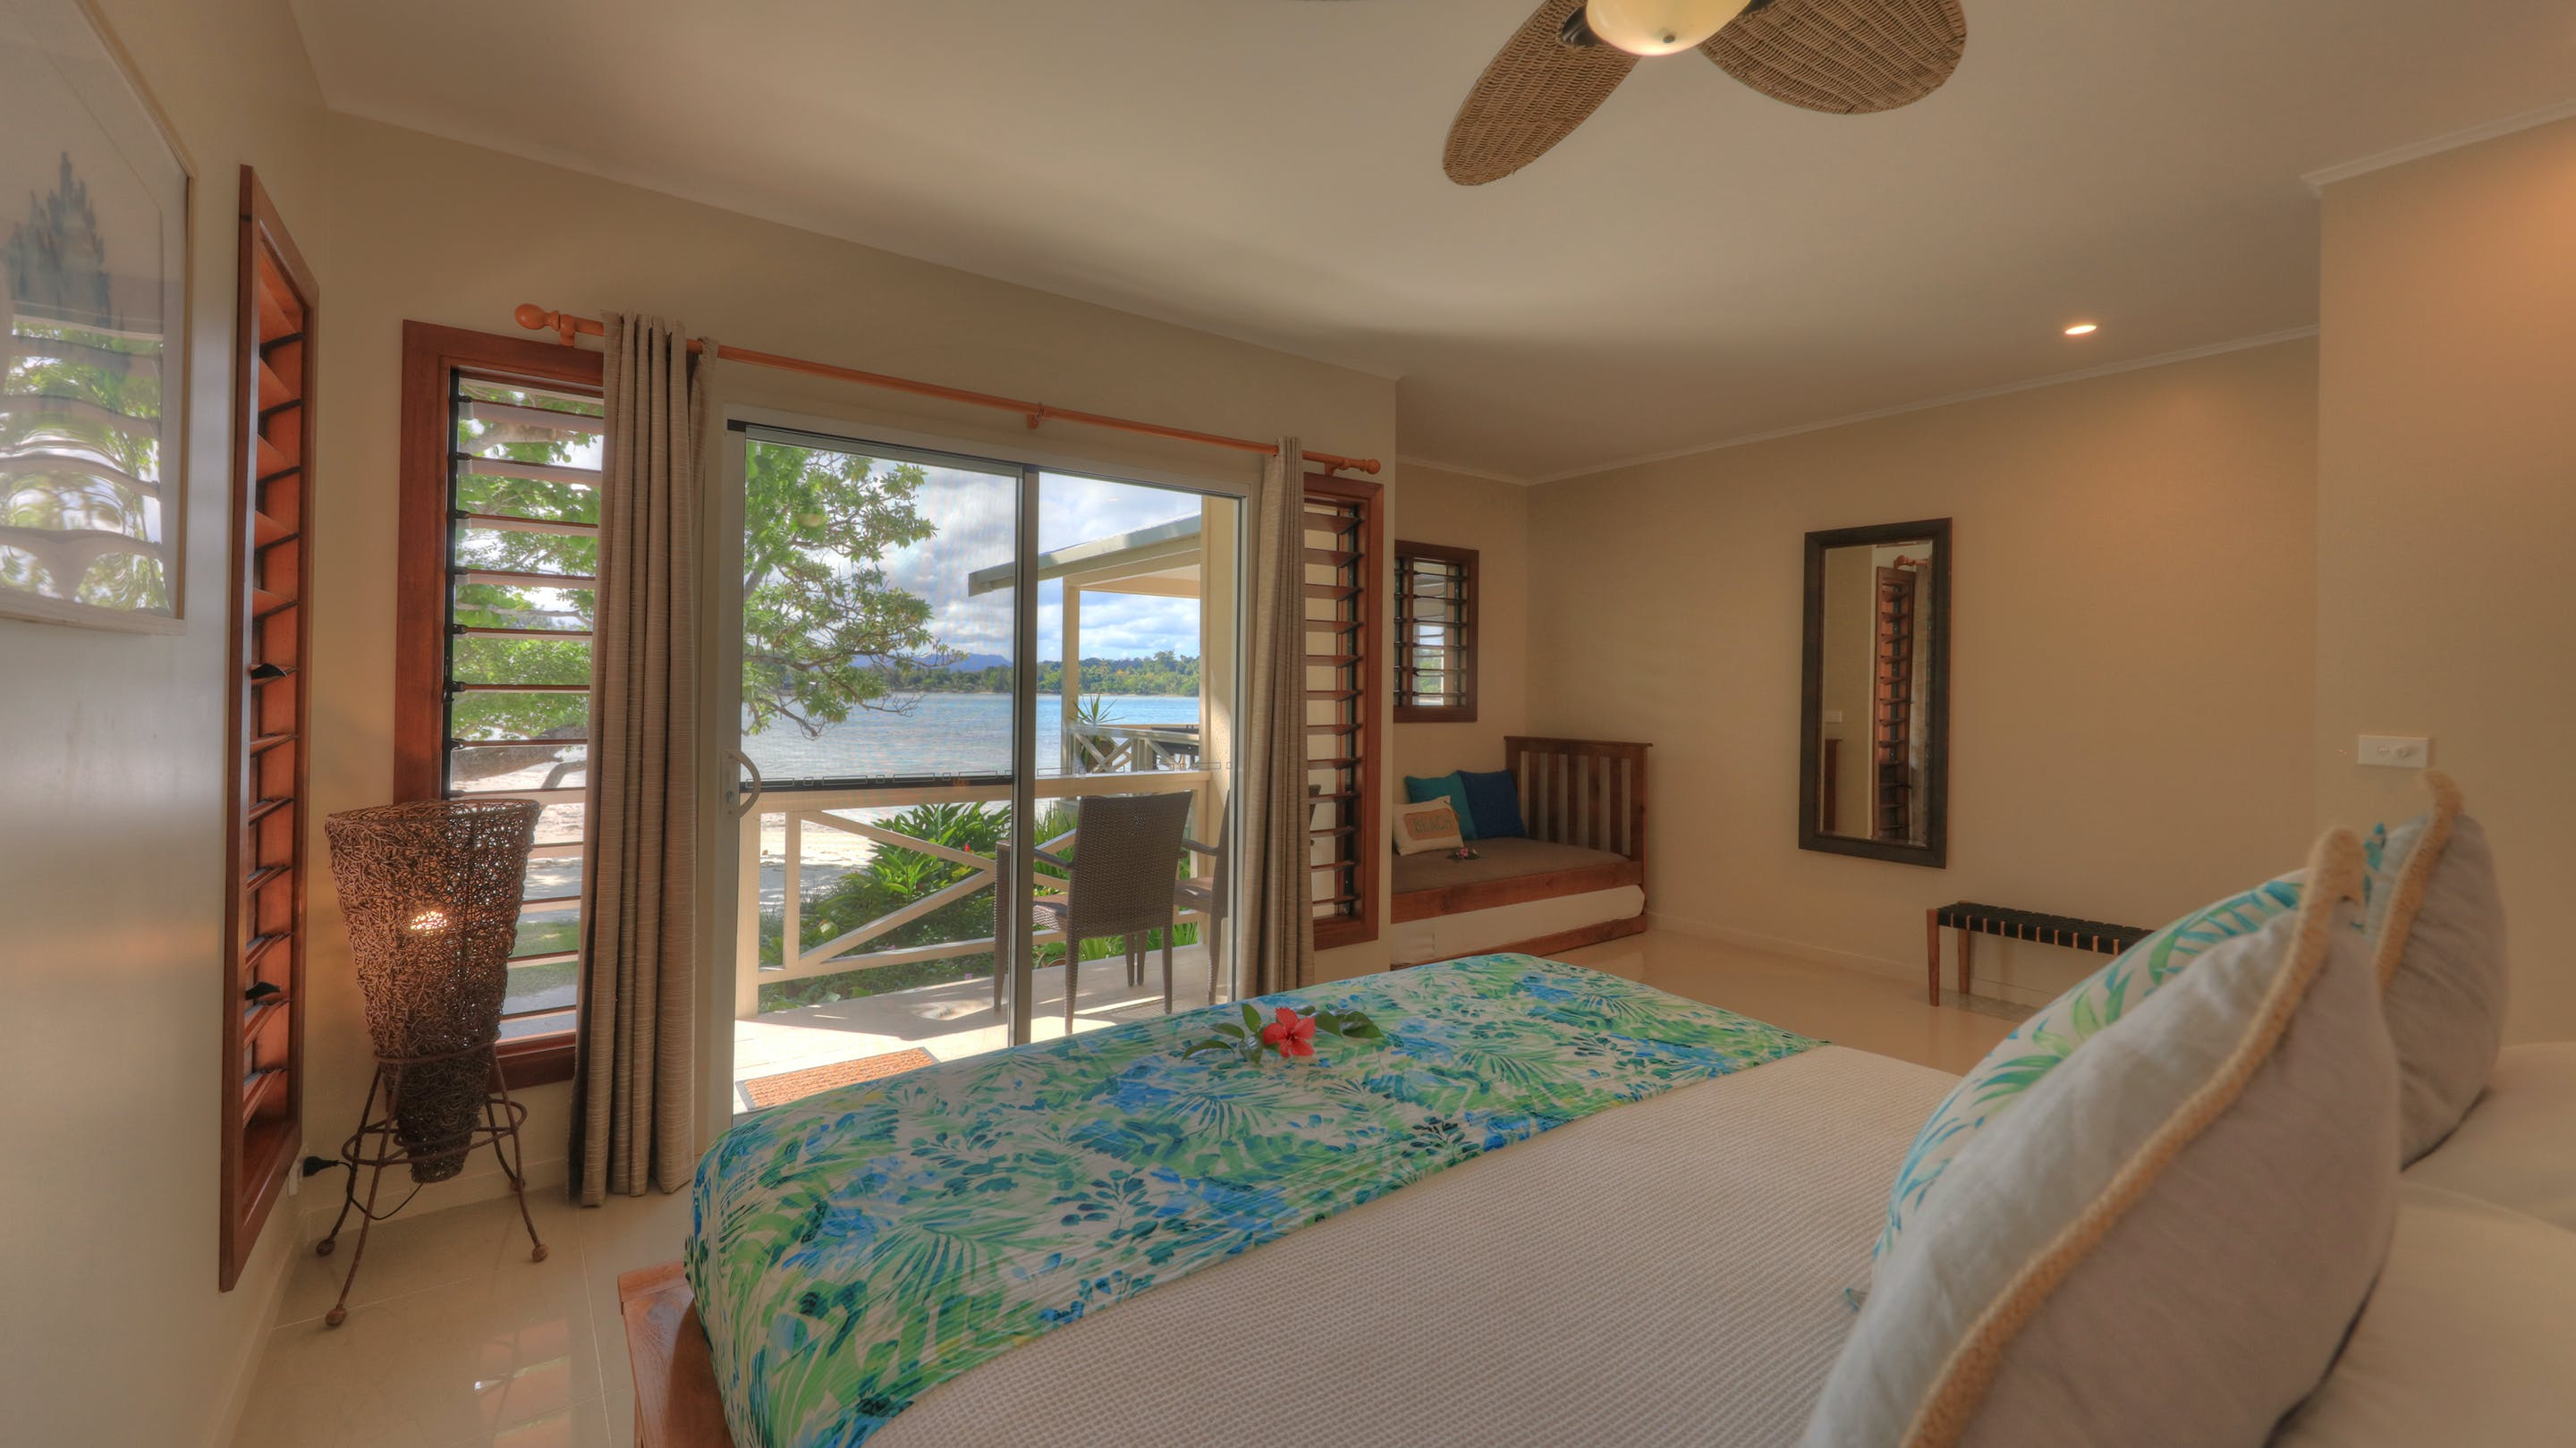 erakor island resort beach cottage #erakorislandresort #tropicalislandholiday #Vanuatuaccommodation